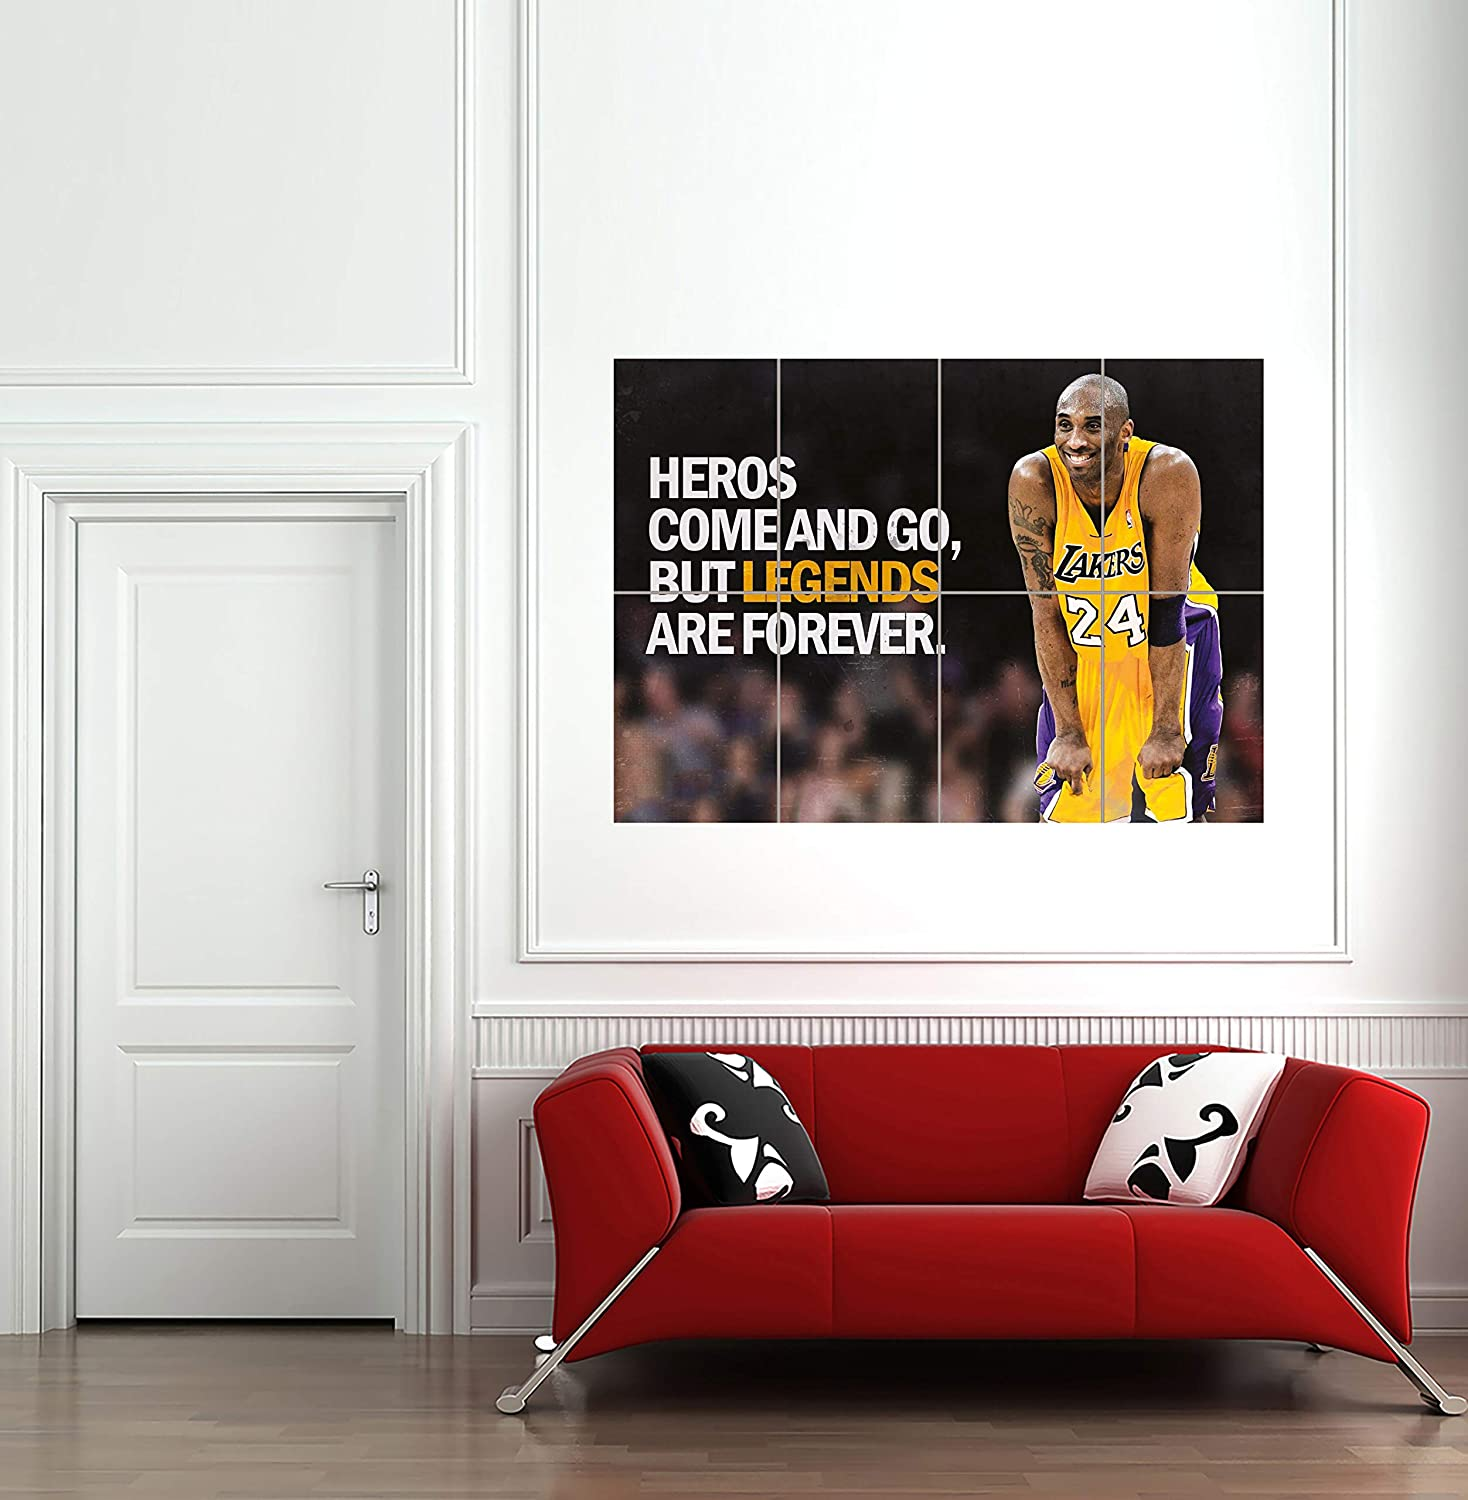 HEROES NBA BASKETBALL KOBE BRYANT LOS ANGELES LAKERS GIANT PRINT AFICHE CARTEL IMPRIMIR CARTELLO POSTER OZ254: Amazon.es: Hogar